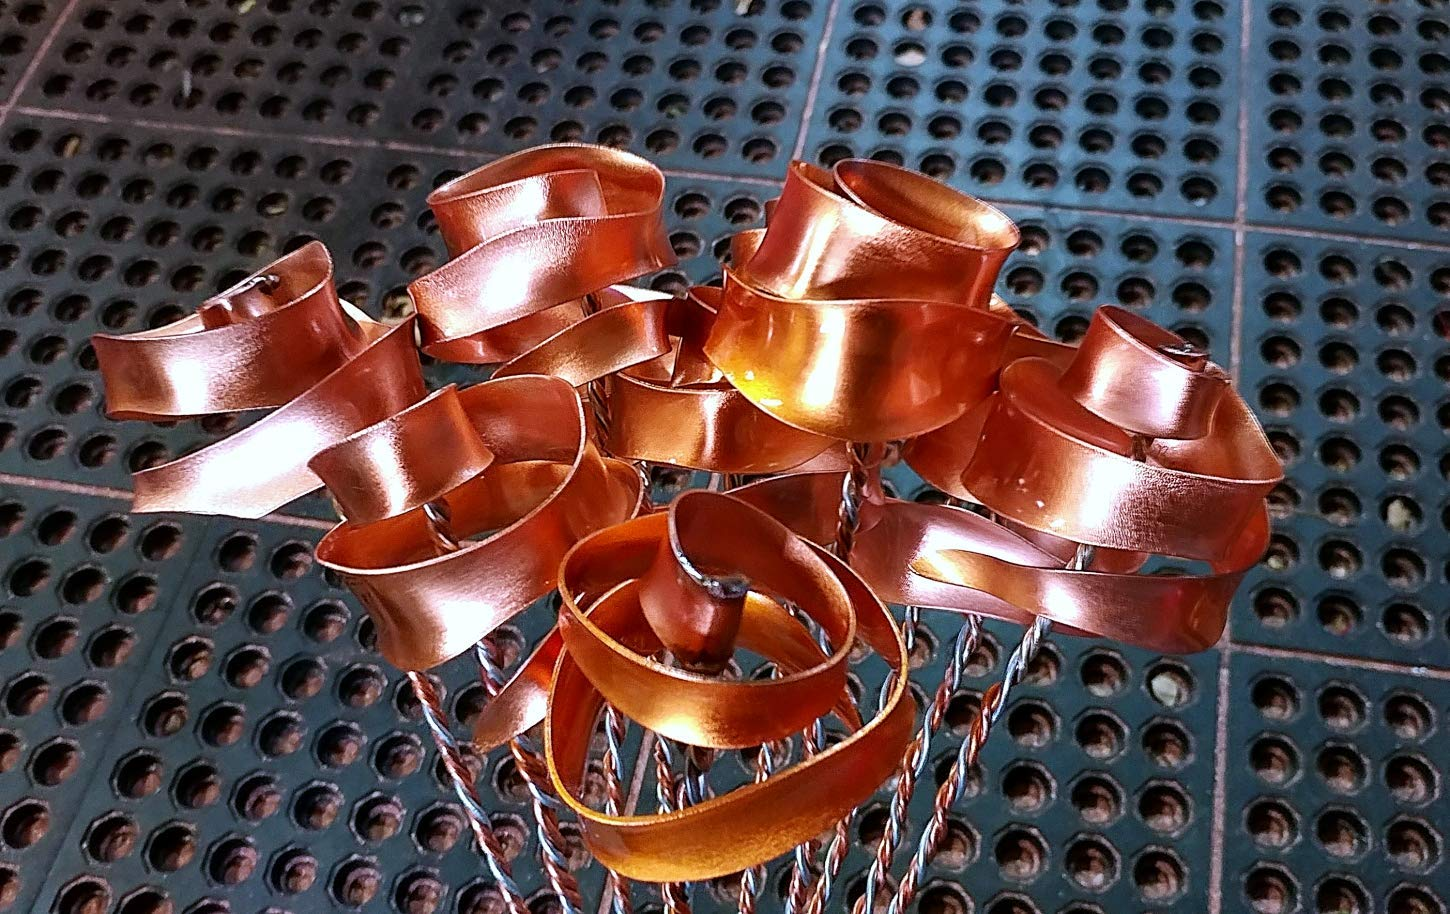 Set of 3 Bright Copper Forever Roses #813'' I Love You'' Steampunk - Wedding Prom Graduation 7th Anniversary Regalo de Aniversario Hanukkah Kwanzaa Valentine's Mother's Day Christmas Gift ! by Refreshing Art (Image #1)